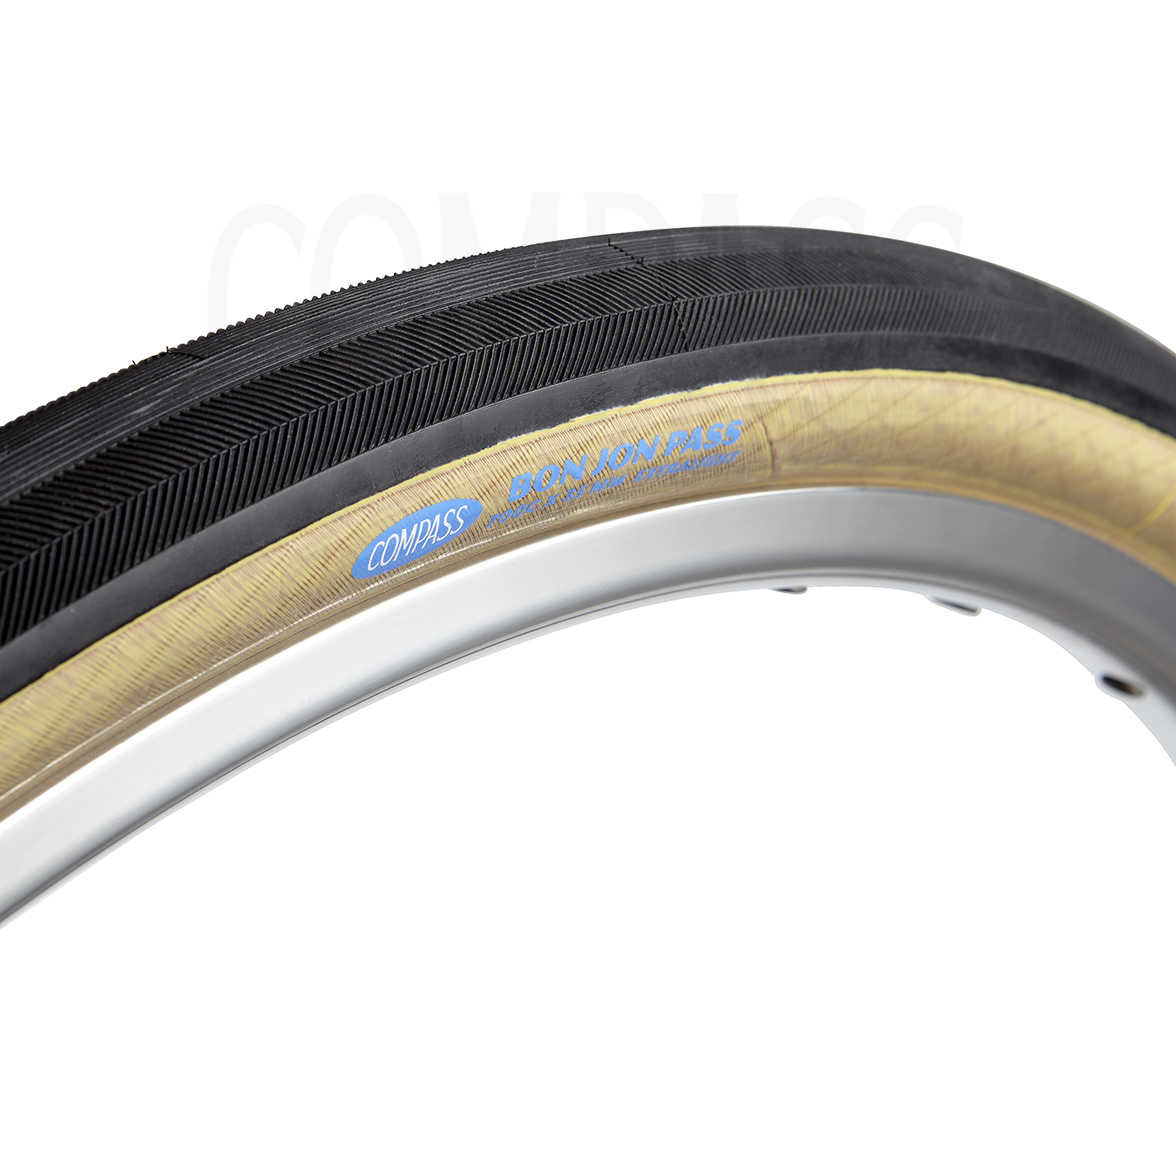 Compass Bon Jon Pass - This is perhaps one of the lighter tan walls we have seen on our tubeless tyre options!